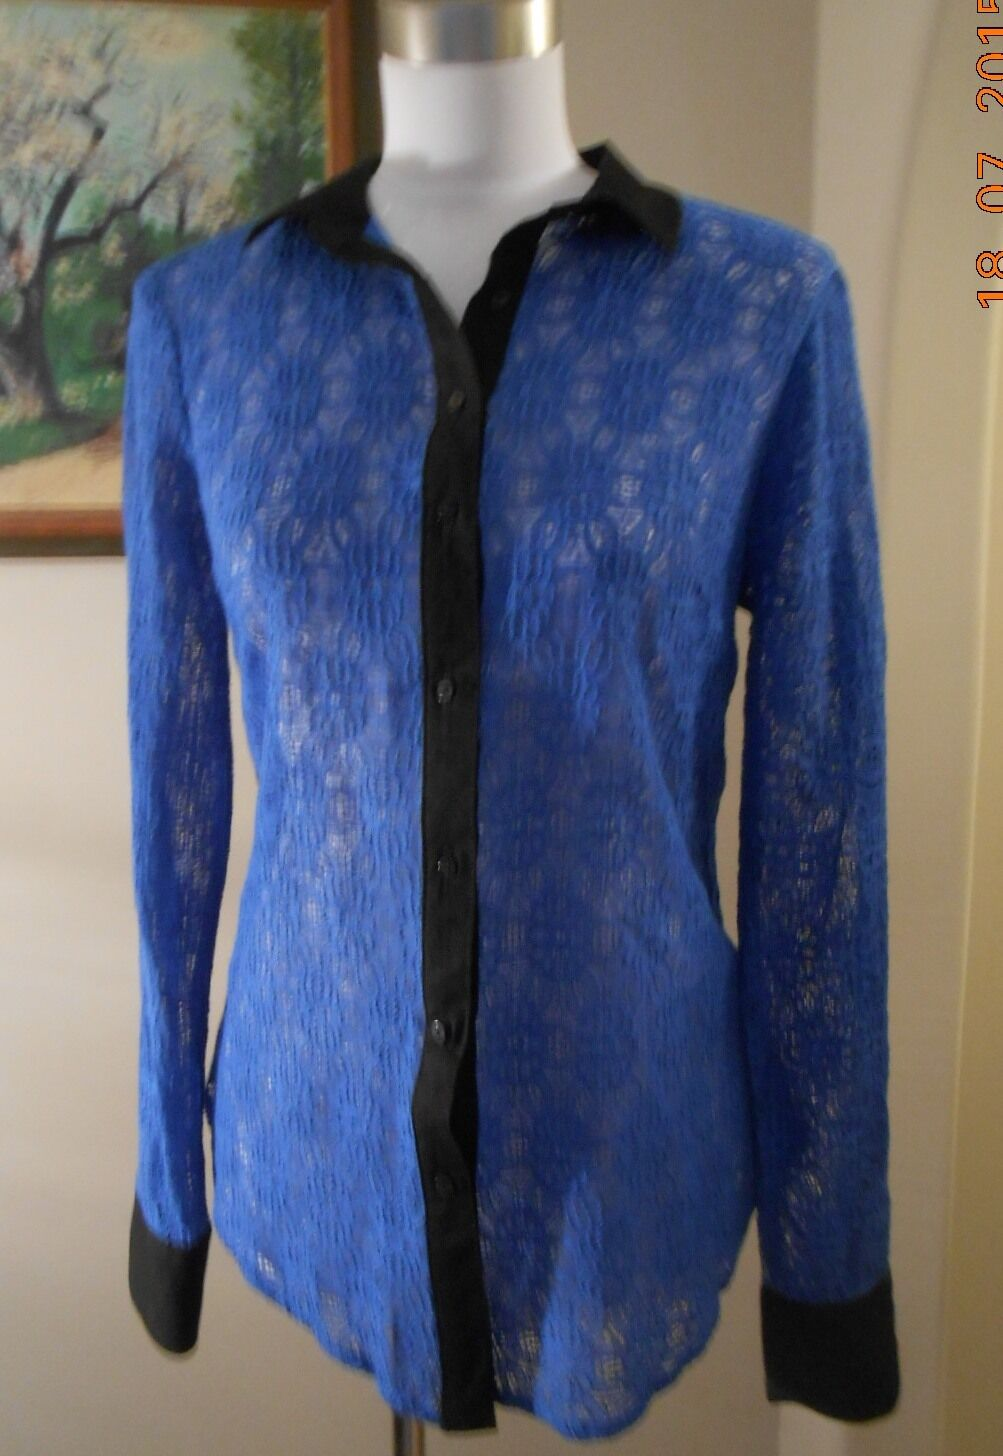 VANESSA VIRGINIA Anthropologie Blau Gemma Lace Blouse Größe 6 New With Tag NWT